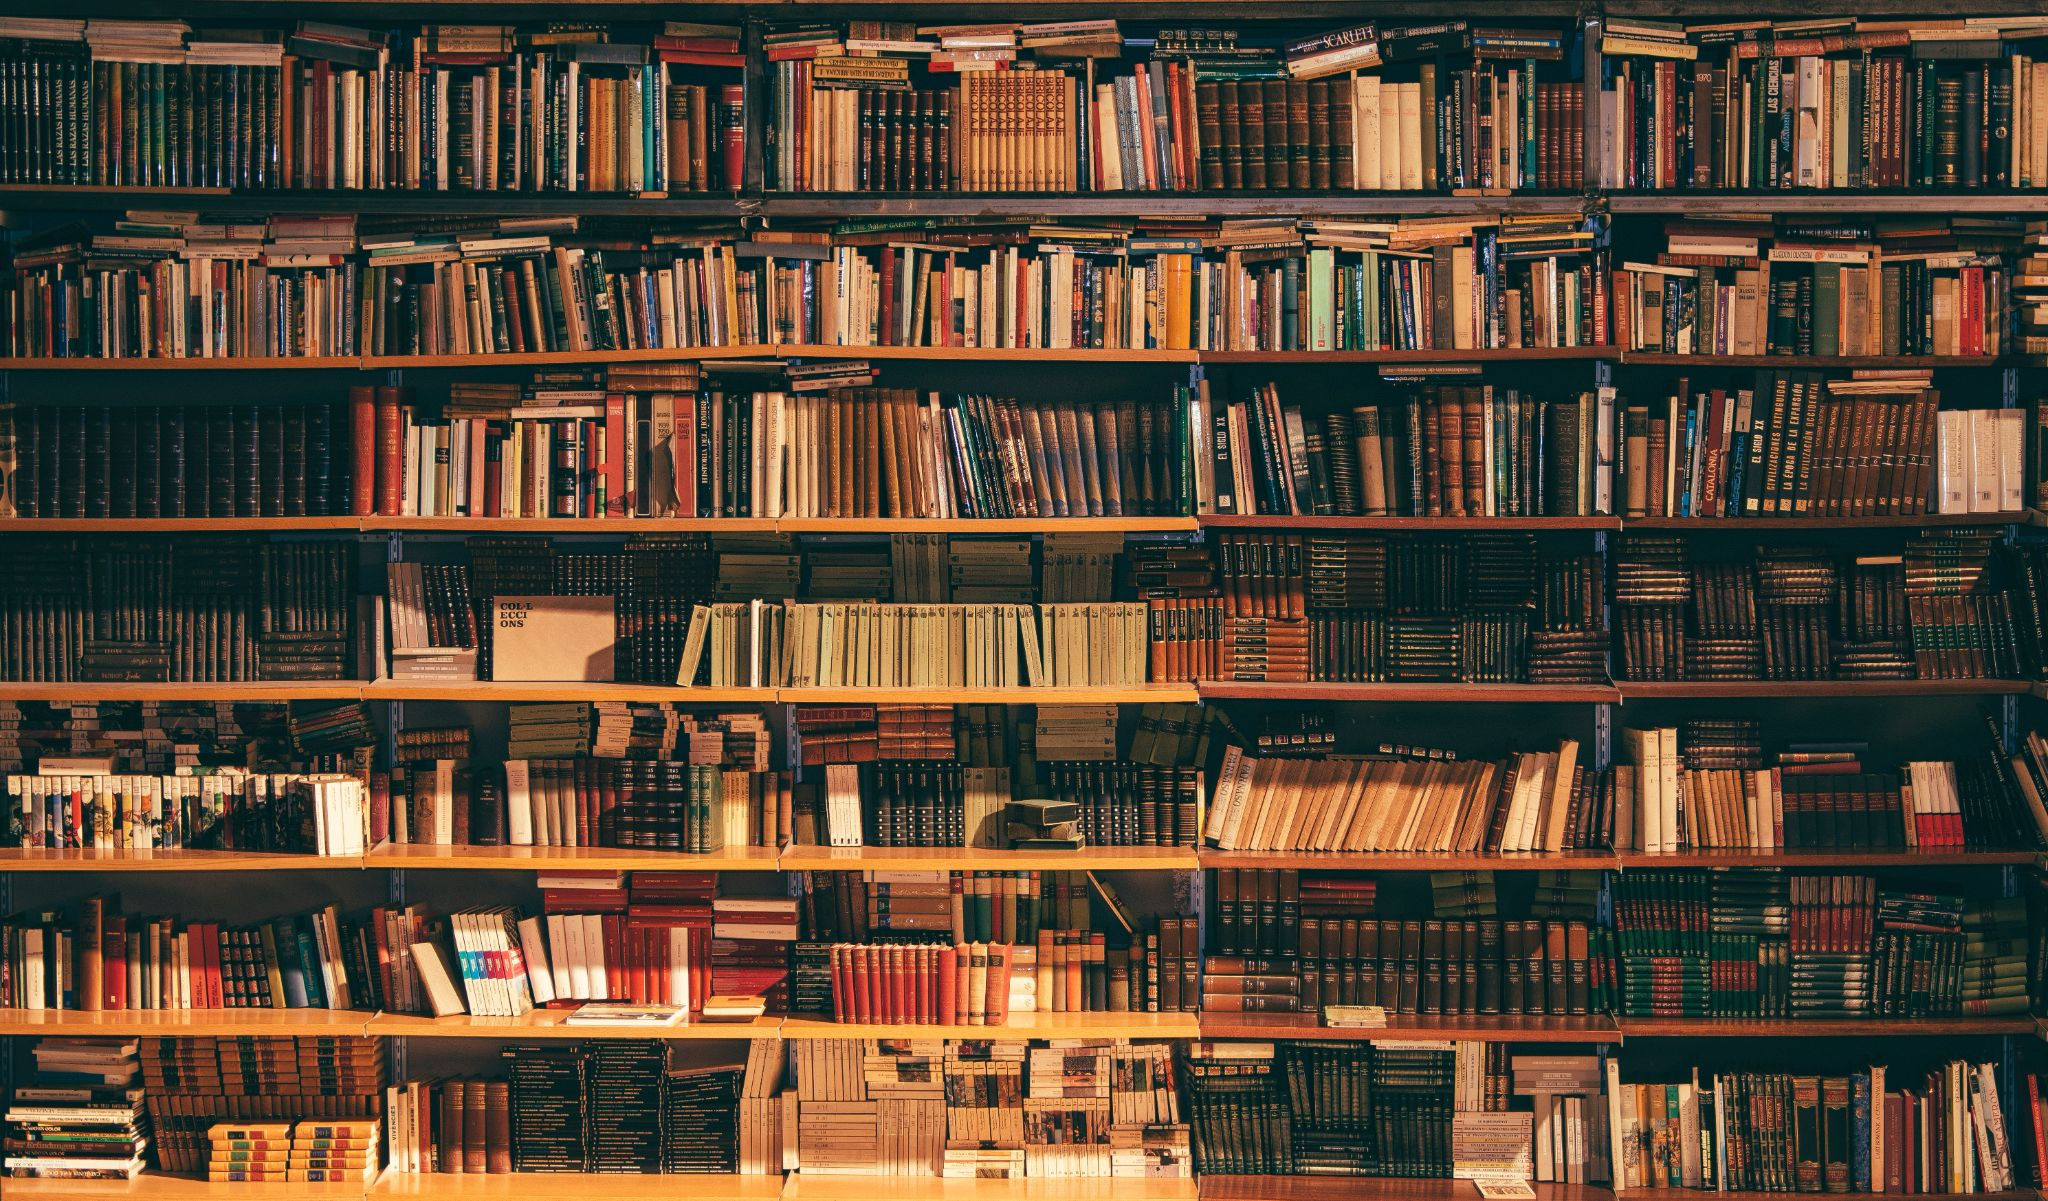 Numerous bookshelves filled with books